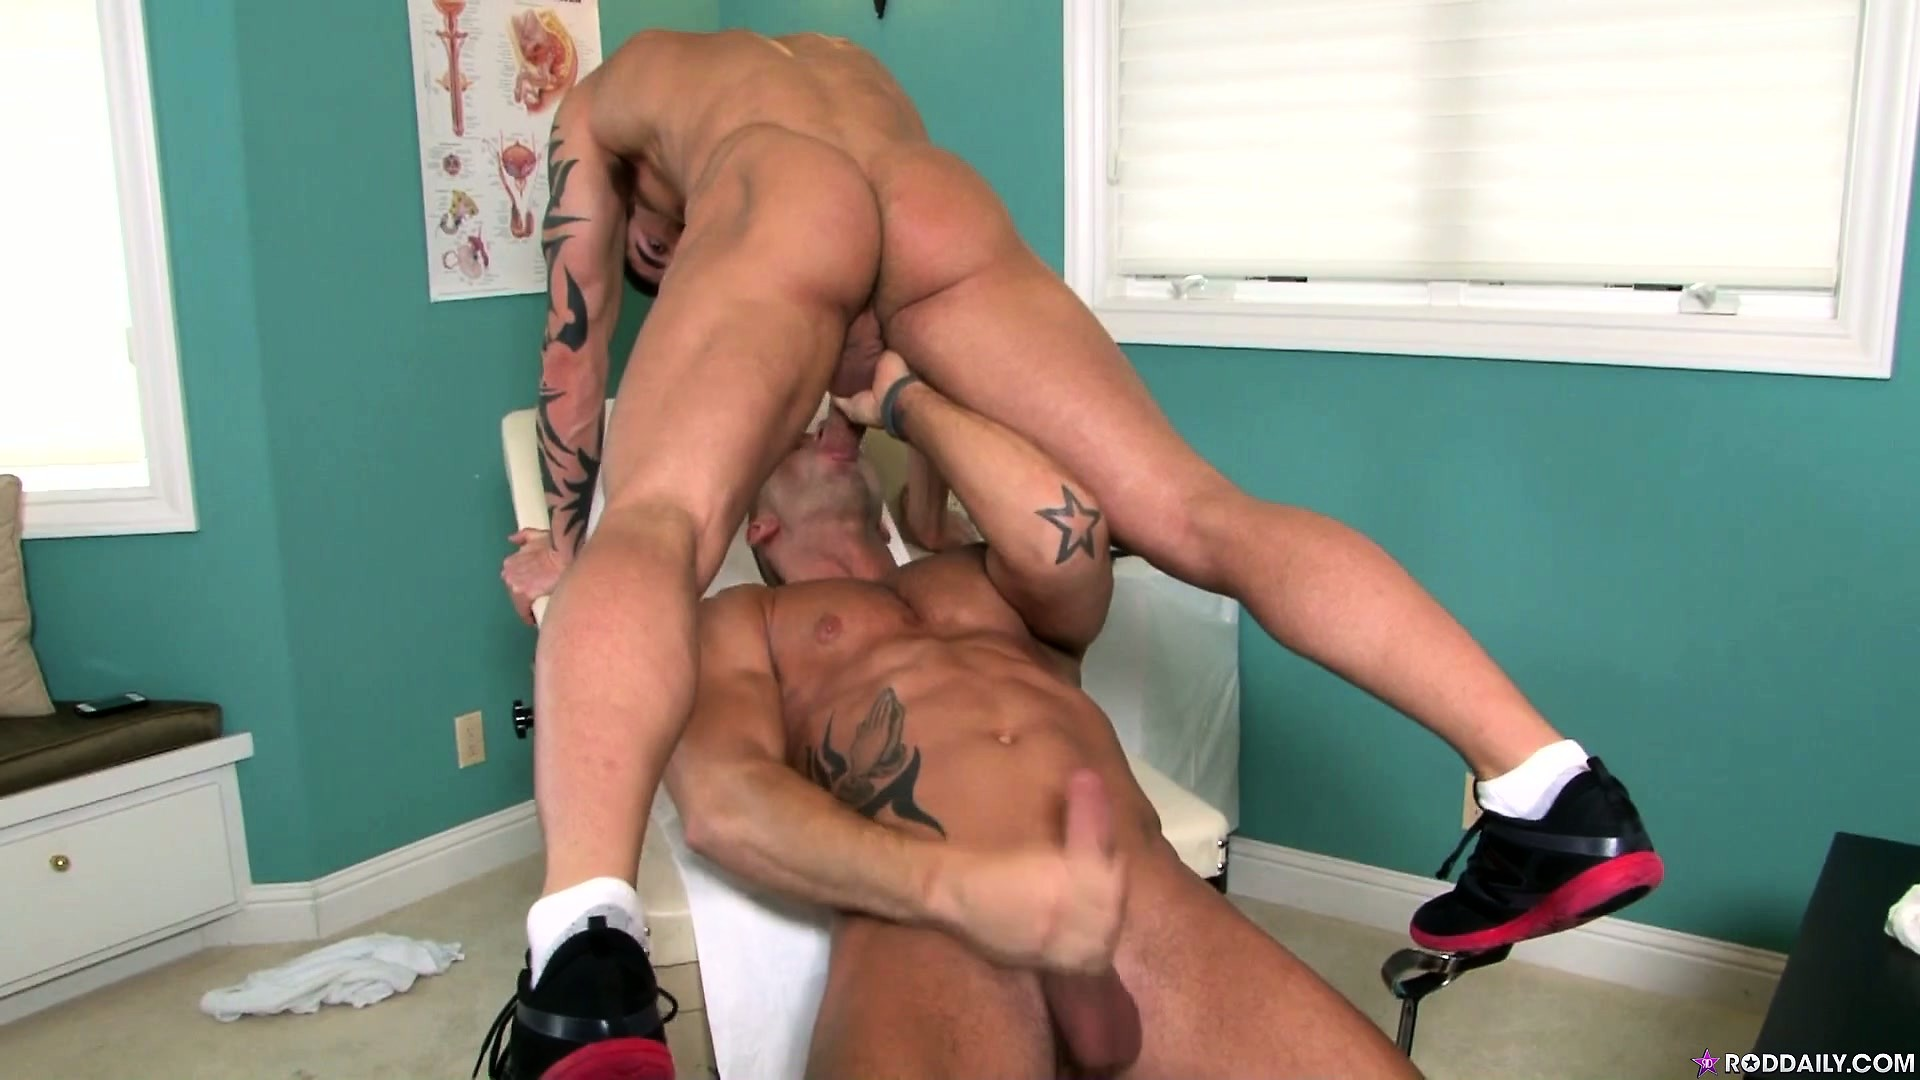 Porno Video of The Patient Licks The Doctor's Ass And Then Gets His Face Fucked